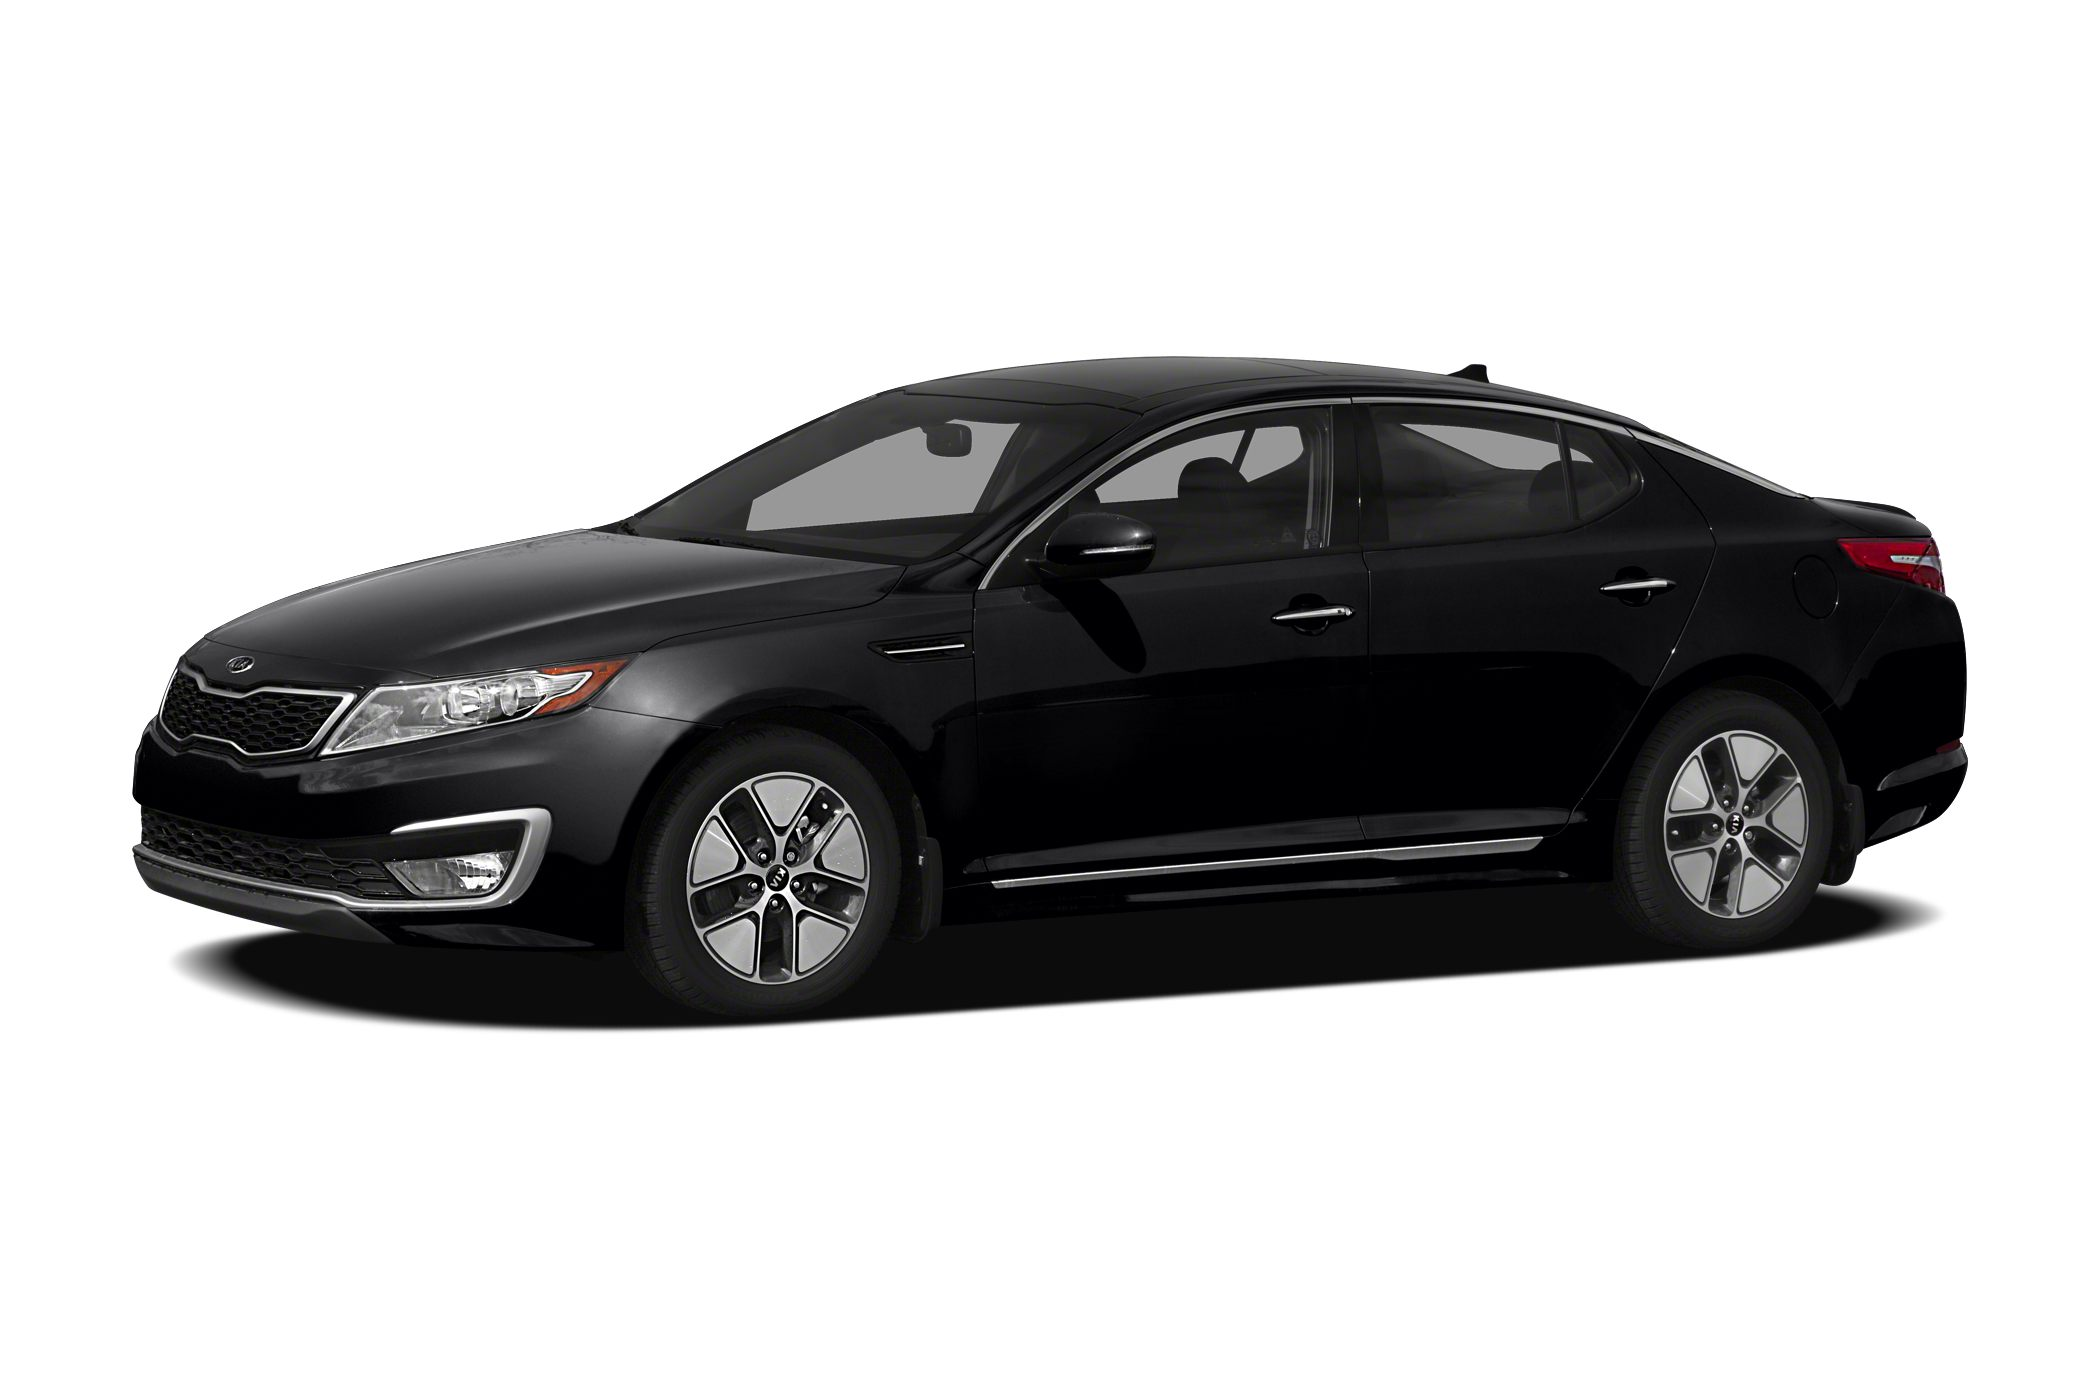 2011 Kia Optima Hybrid EX ACCIDENT FREE HISTORY REPORT and FINANCING AVAILABLE Premium Technology